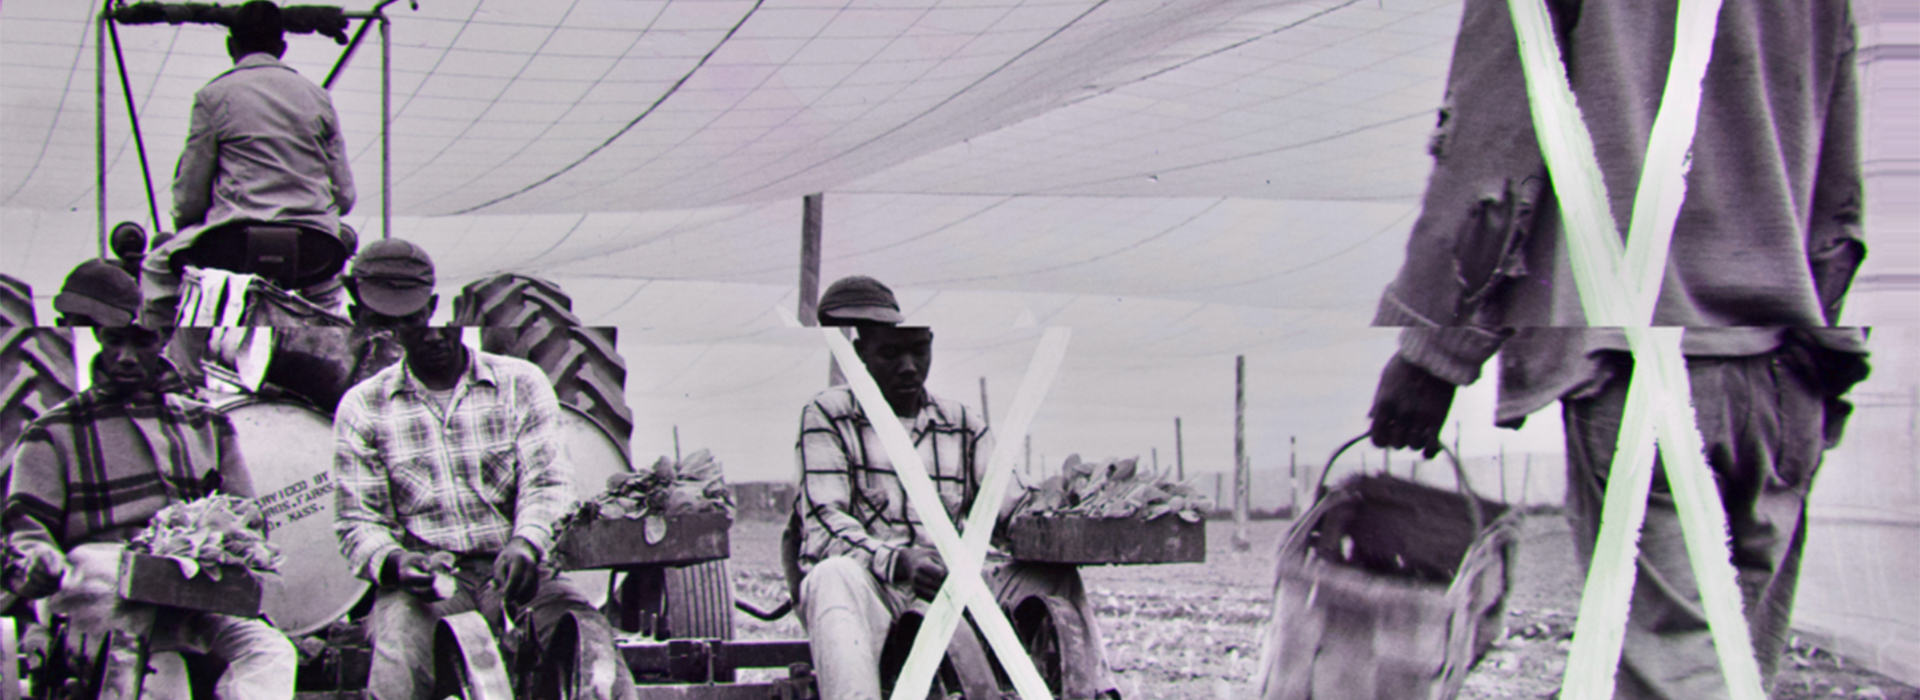 Black and white photo of several workers on a tobacco plantation with an X over two individuals